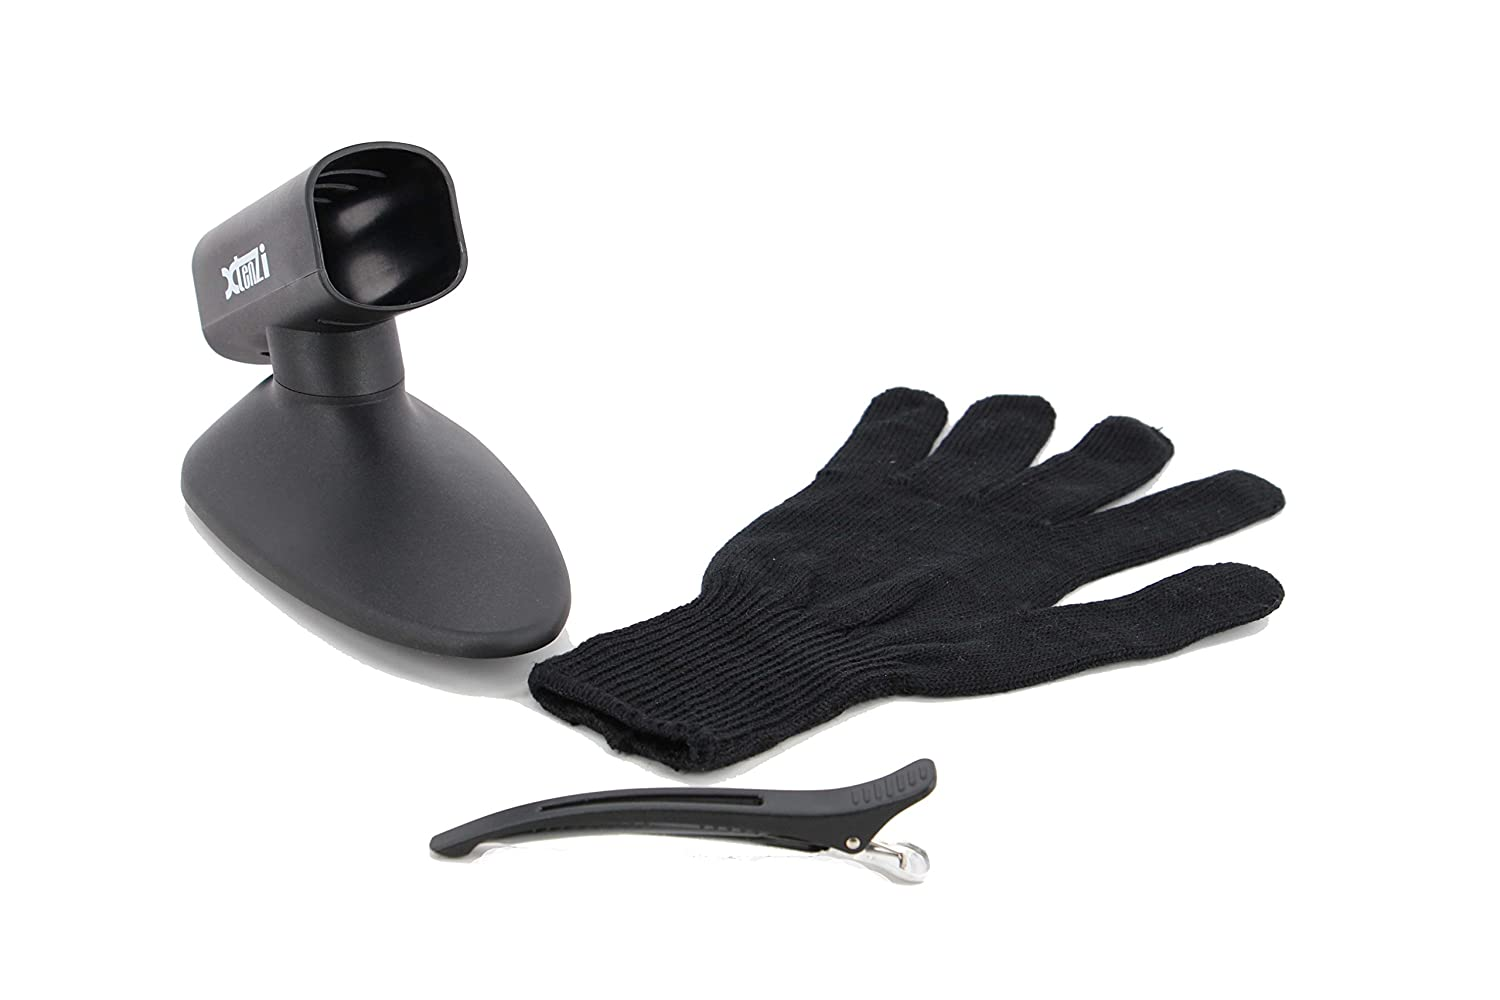 Xtenzi Wall Mount Flat Iron Holder, Heat Resistant Glove & Clip Bundle for Straightener Hair Styling Tools